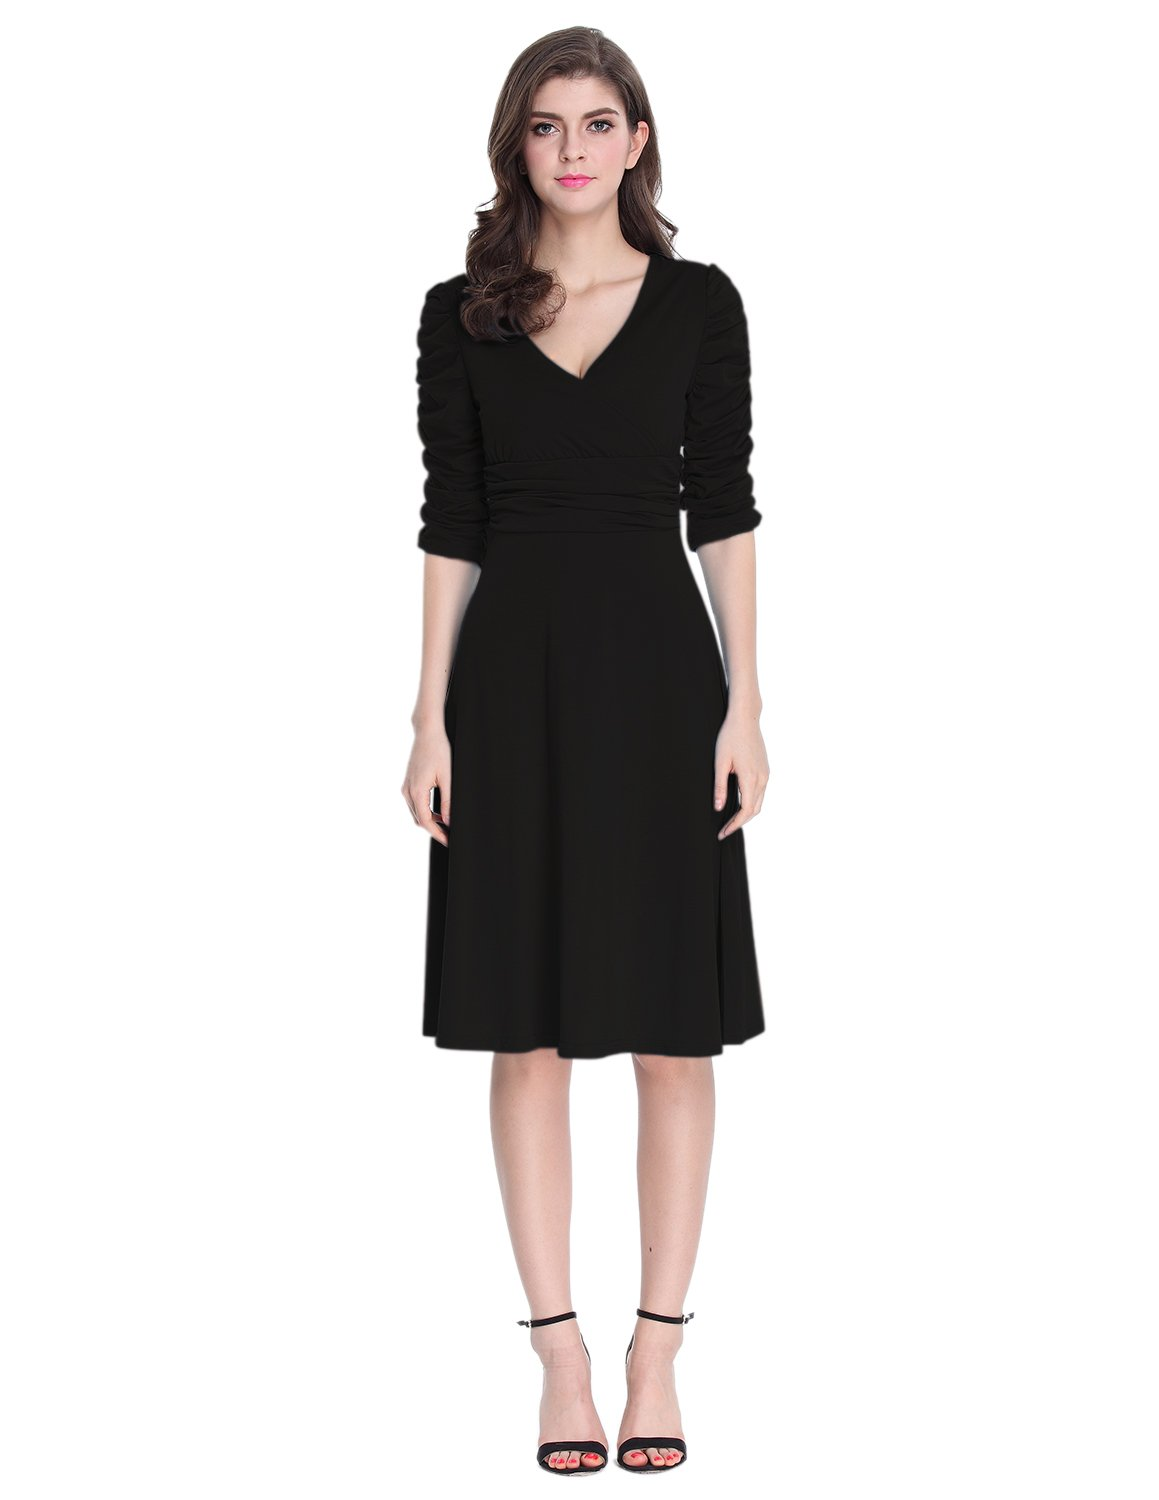 Sue&Joe Women's 3/4 Sleeve Dress Ruched Waist Classy V-Neck Casual Cocktail Dress, Black, TagsizeS=USsize2